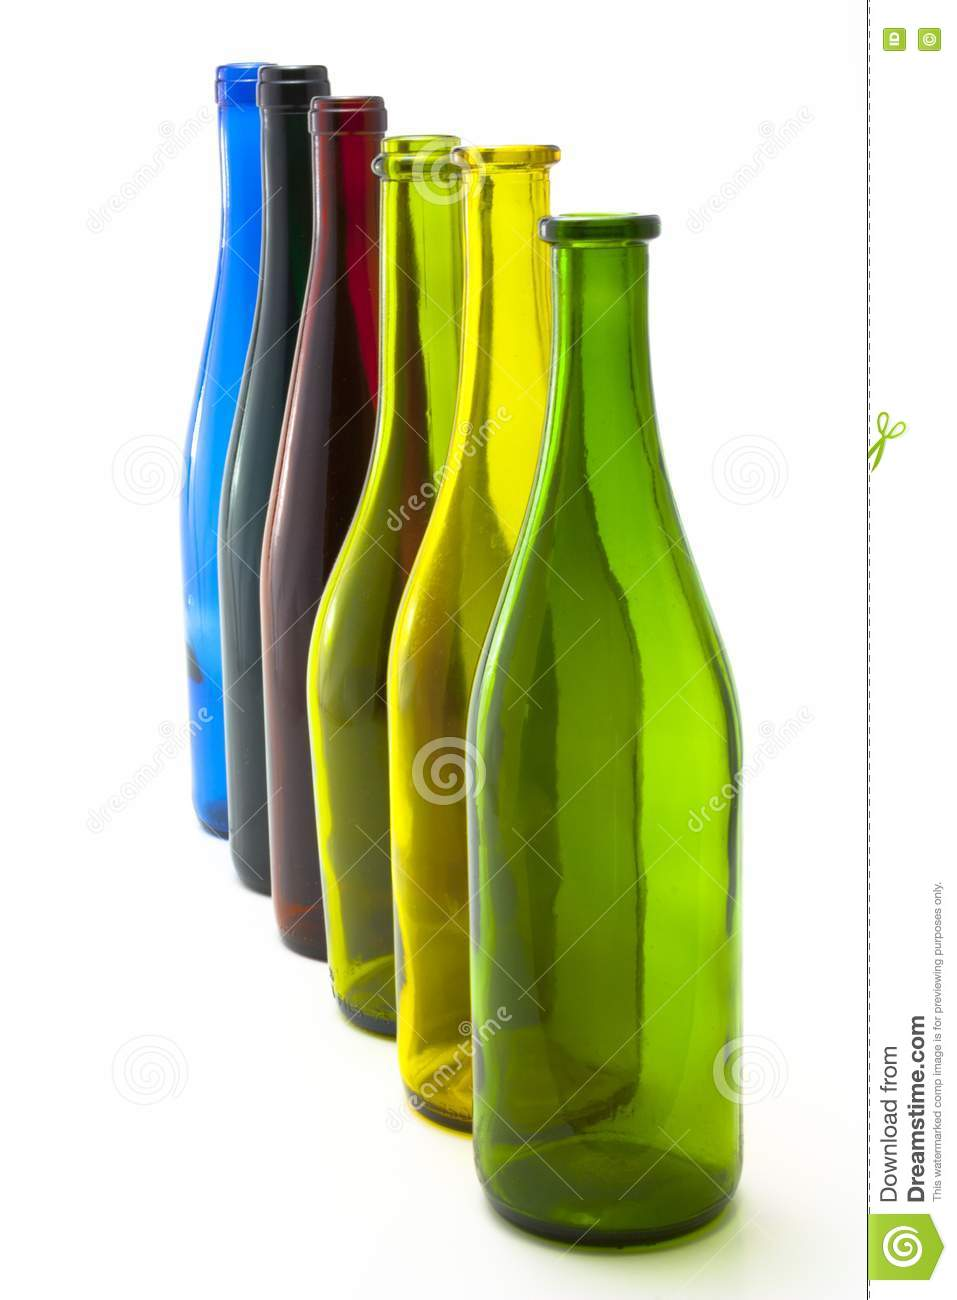 Colorful empty wine bottles in a line stock photography image 15731542 - Empty colored wine bottles ...